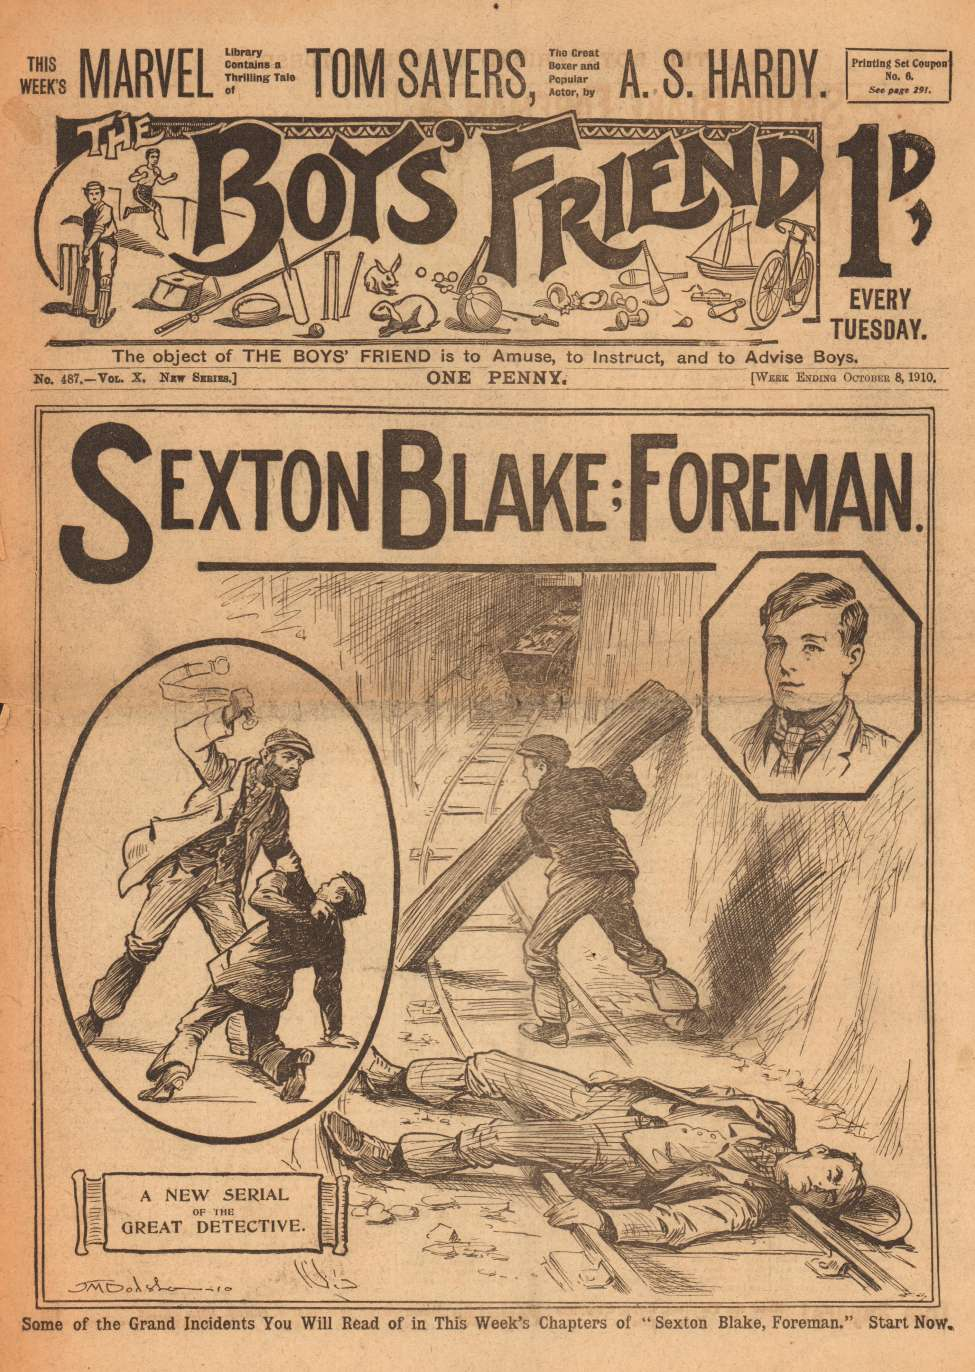 Comic Book Cover For The Boys' Friend 0487 - Sexton Blake: Foreman